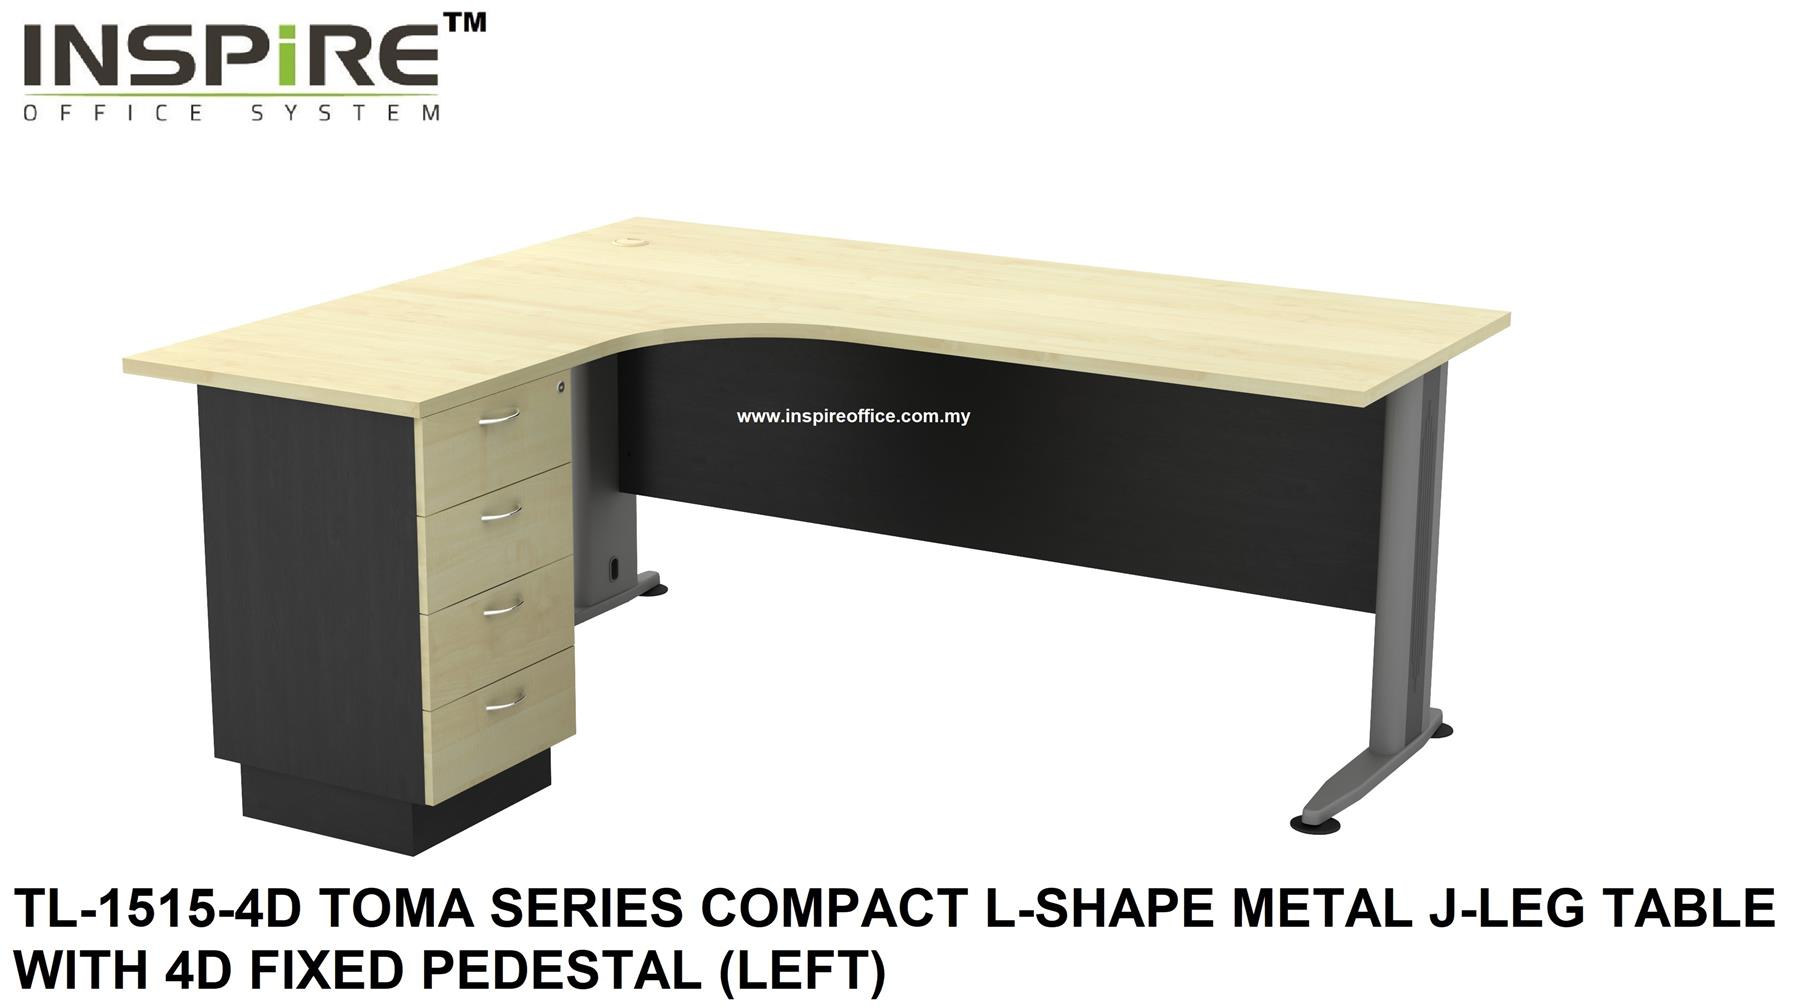 TL-1515-4D TOMA SERIES COMPACT L-SHAPE METAL J-LEG TABLE WITH 4D FIXED